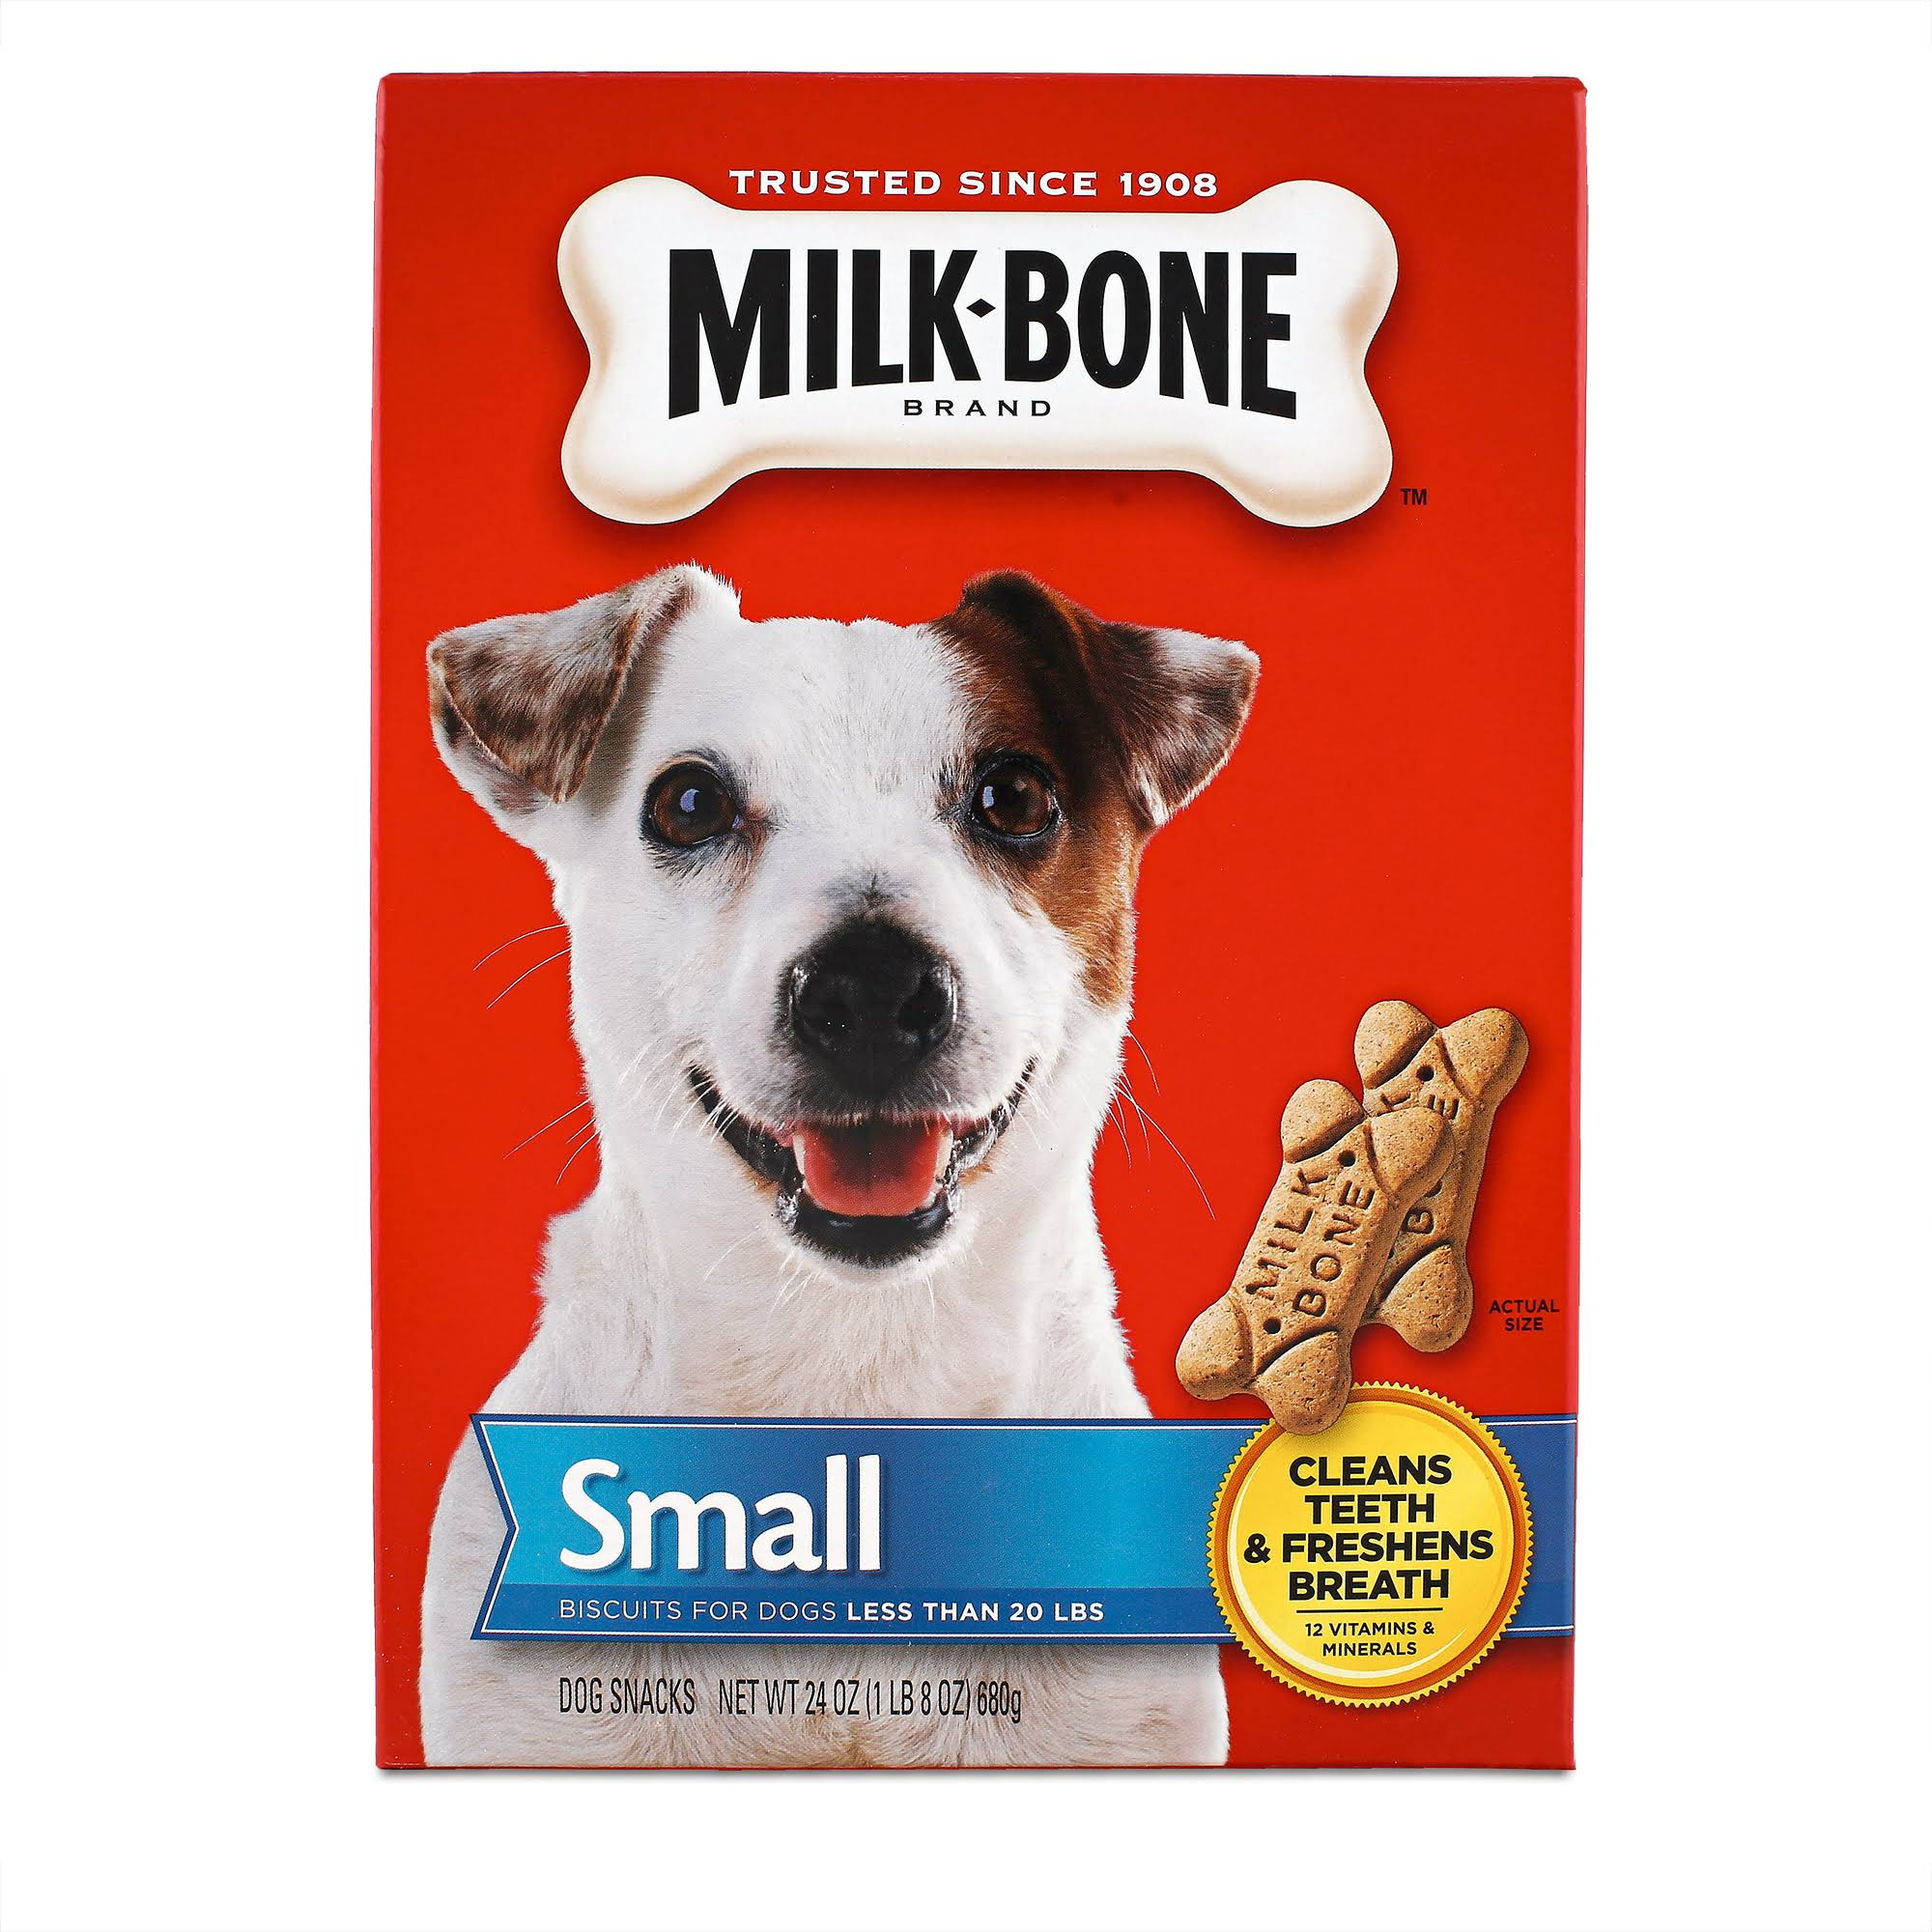 Milk Bone Dog Snacks - Small